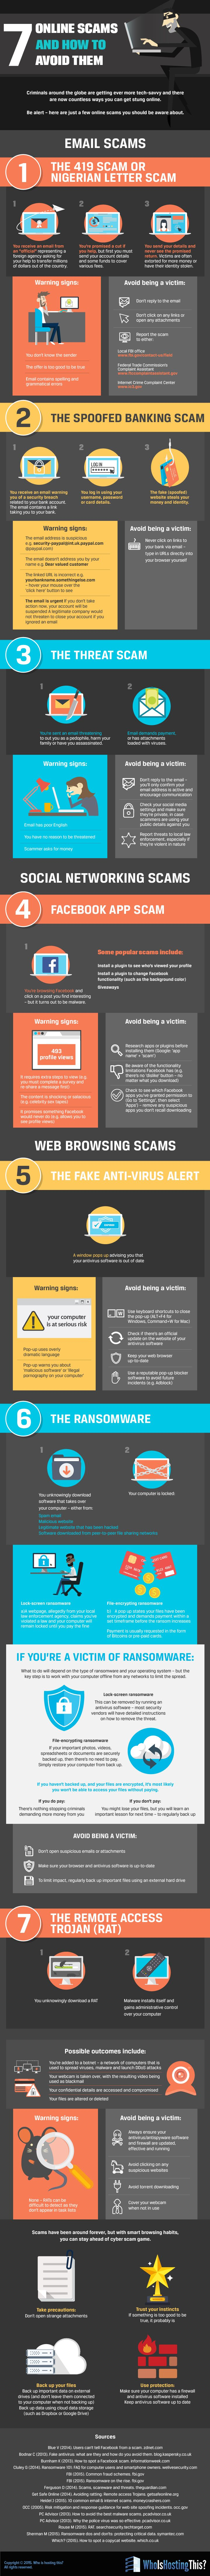 7 Online Scams and How to Avoid Them